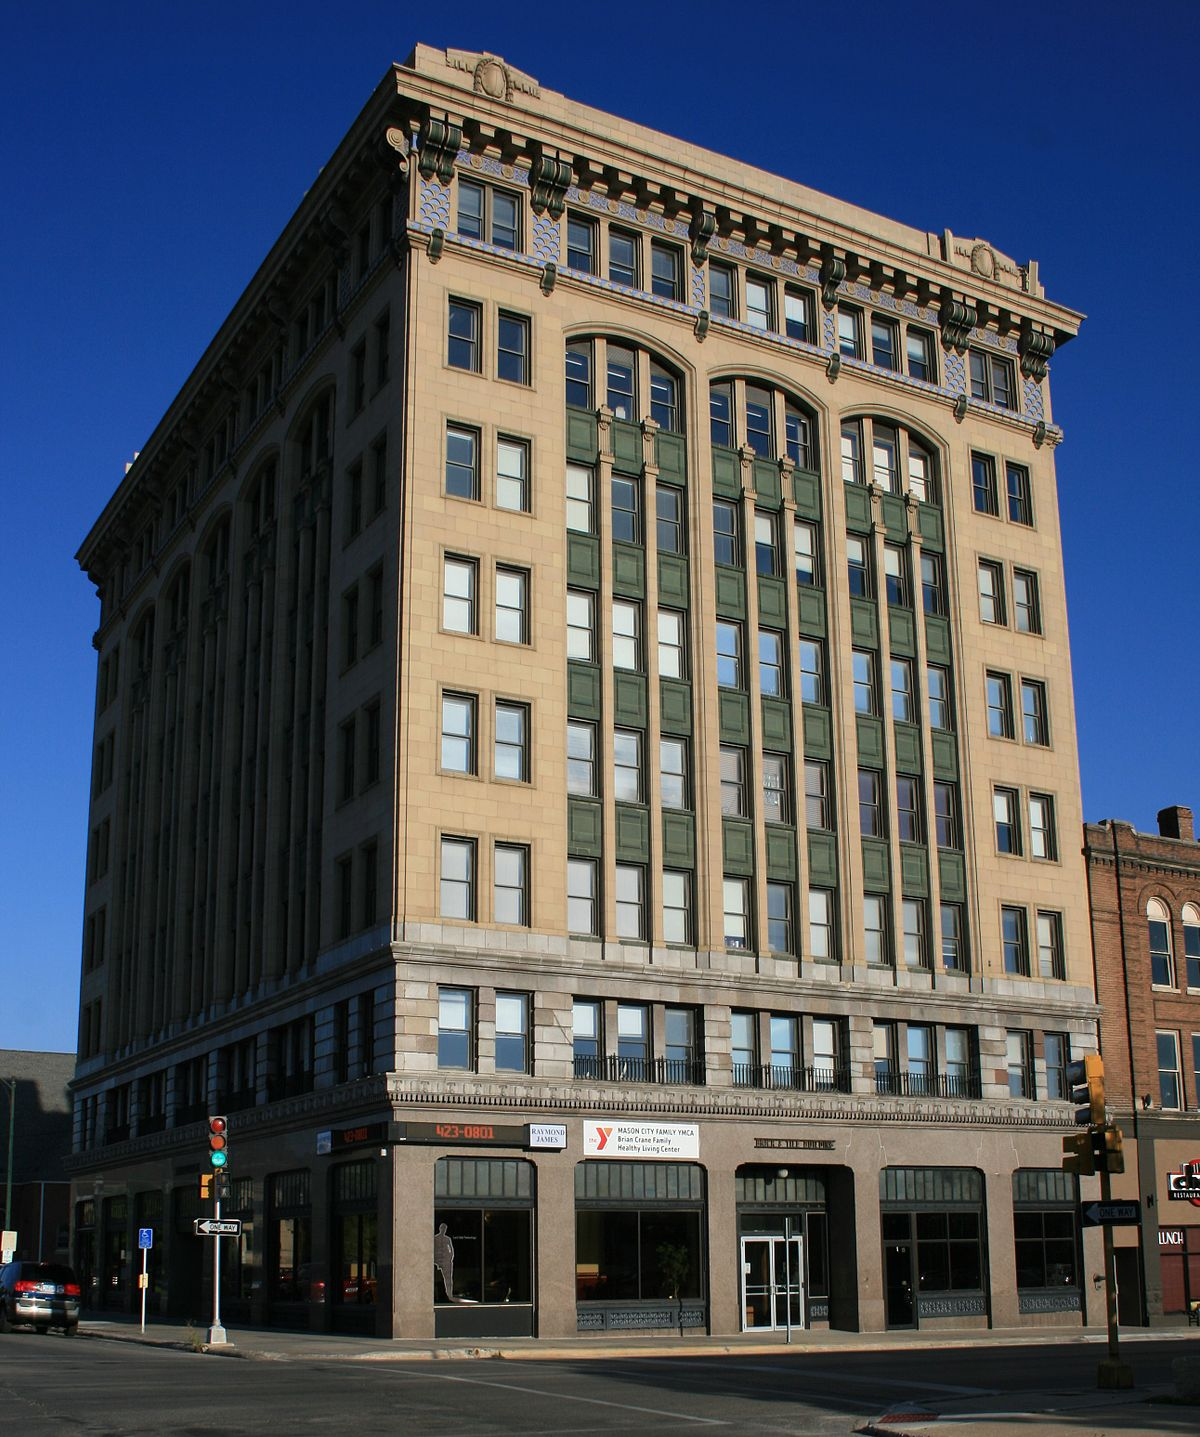 MBA Modern Brotherhood Of America Building